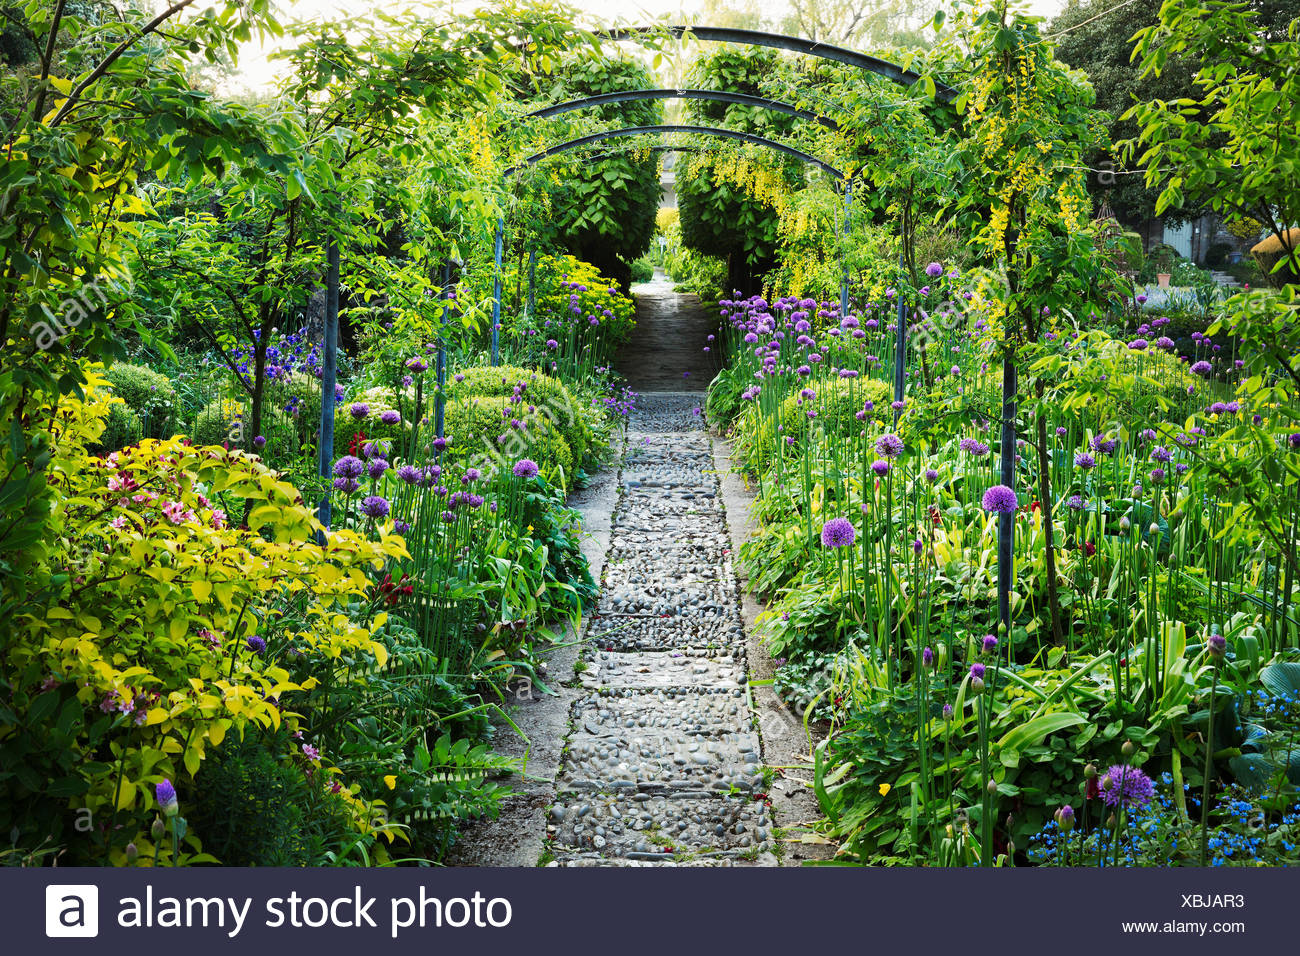 Mature Plants And Shrubs In An English Garden, Pathway And Pergola.  Cotswold Stone, Purple Aliums Flowering. Glouchestershire Hotel Gardens